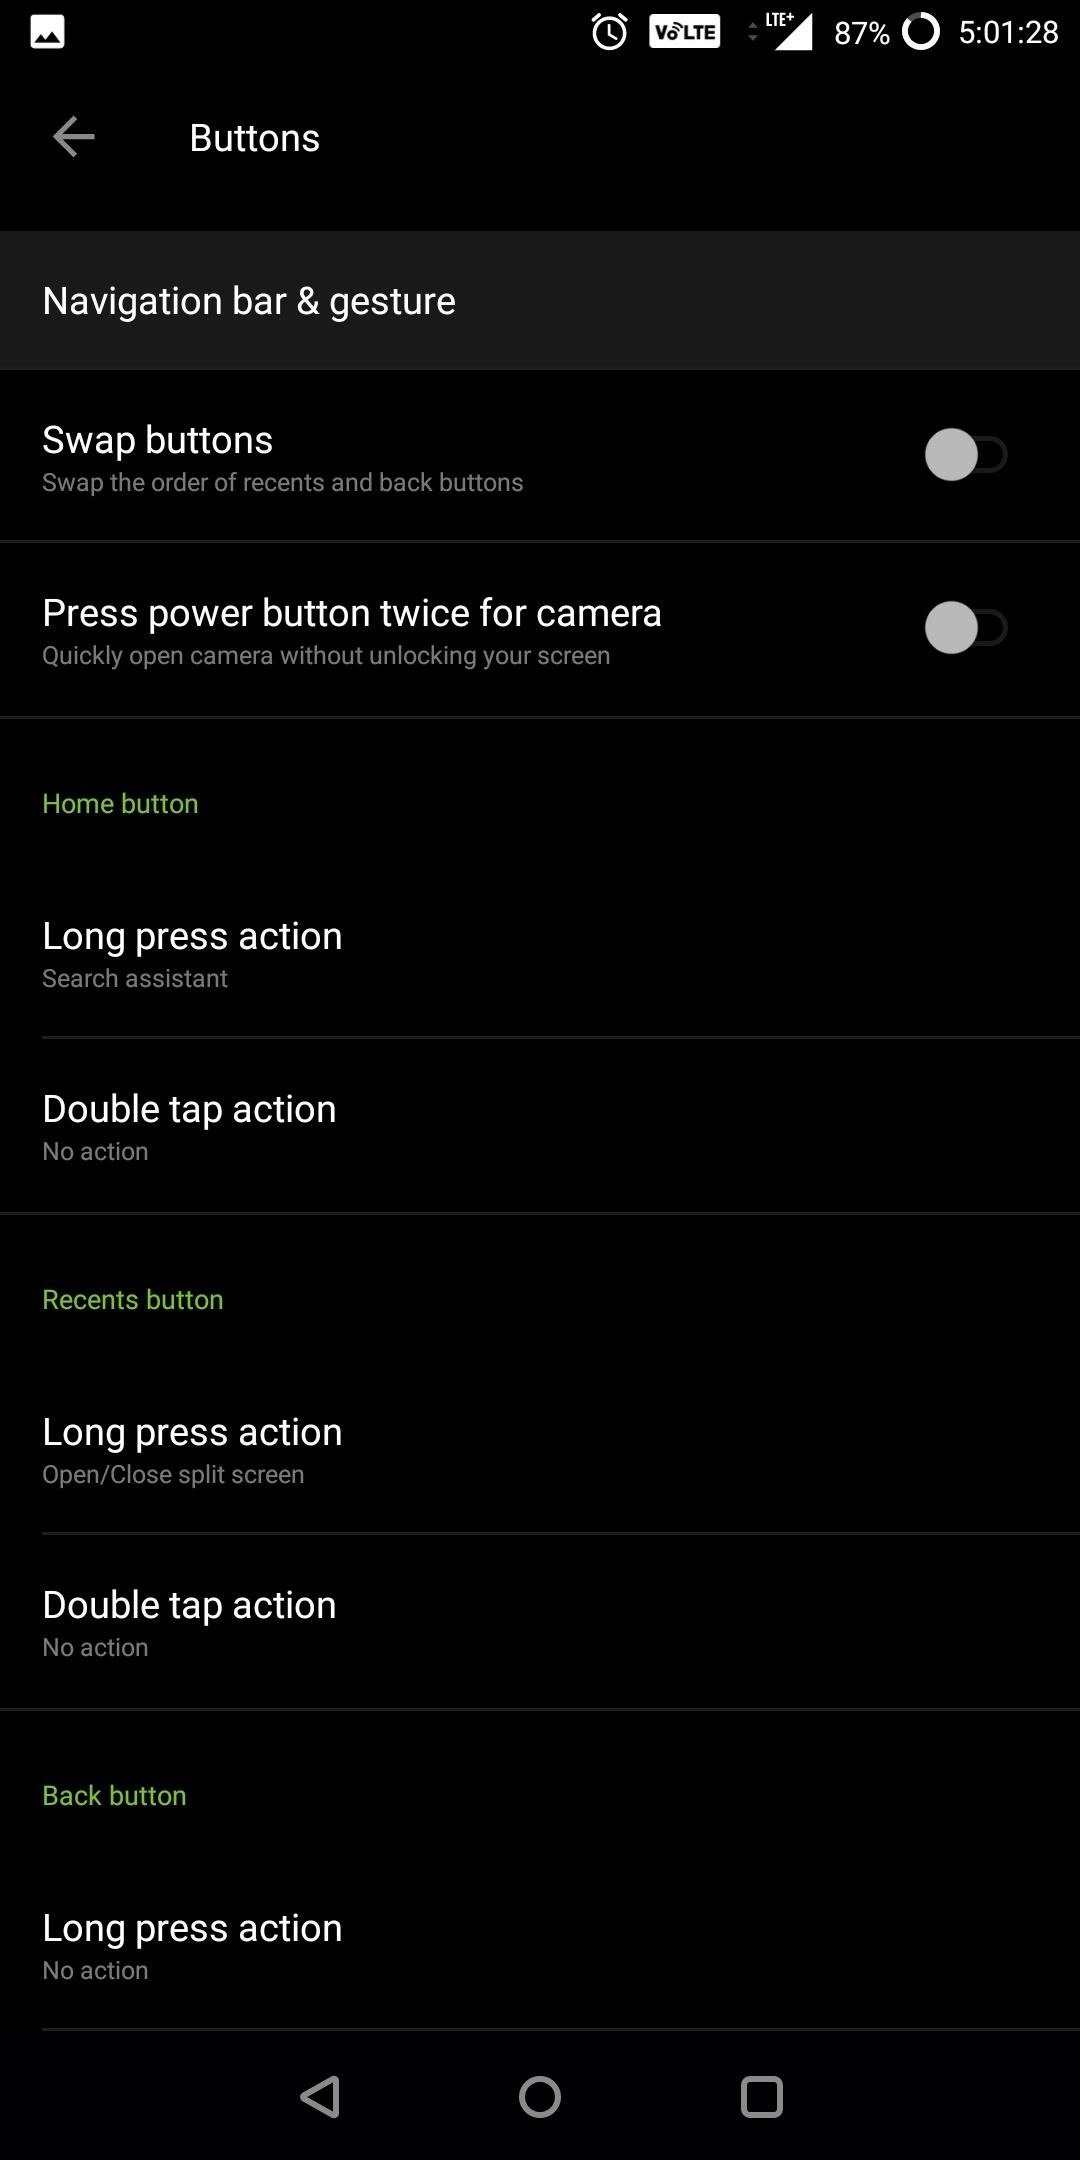 10 Cool New Features in Android 8.1 for the OnePlus 5 & 5T